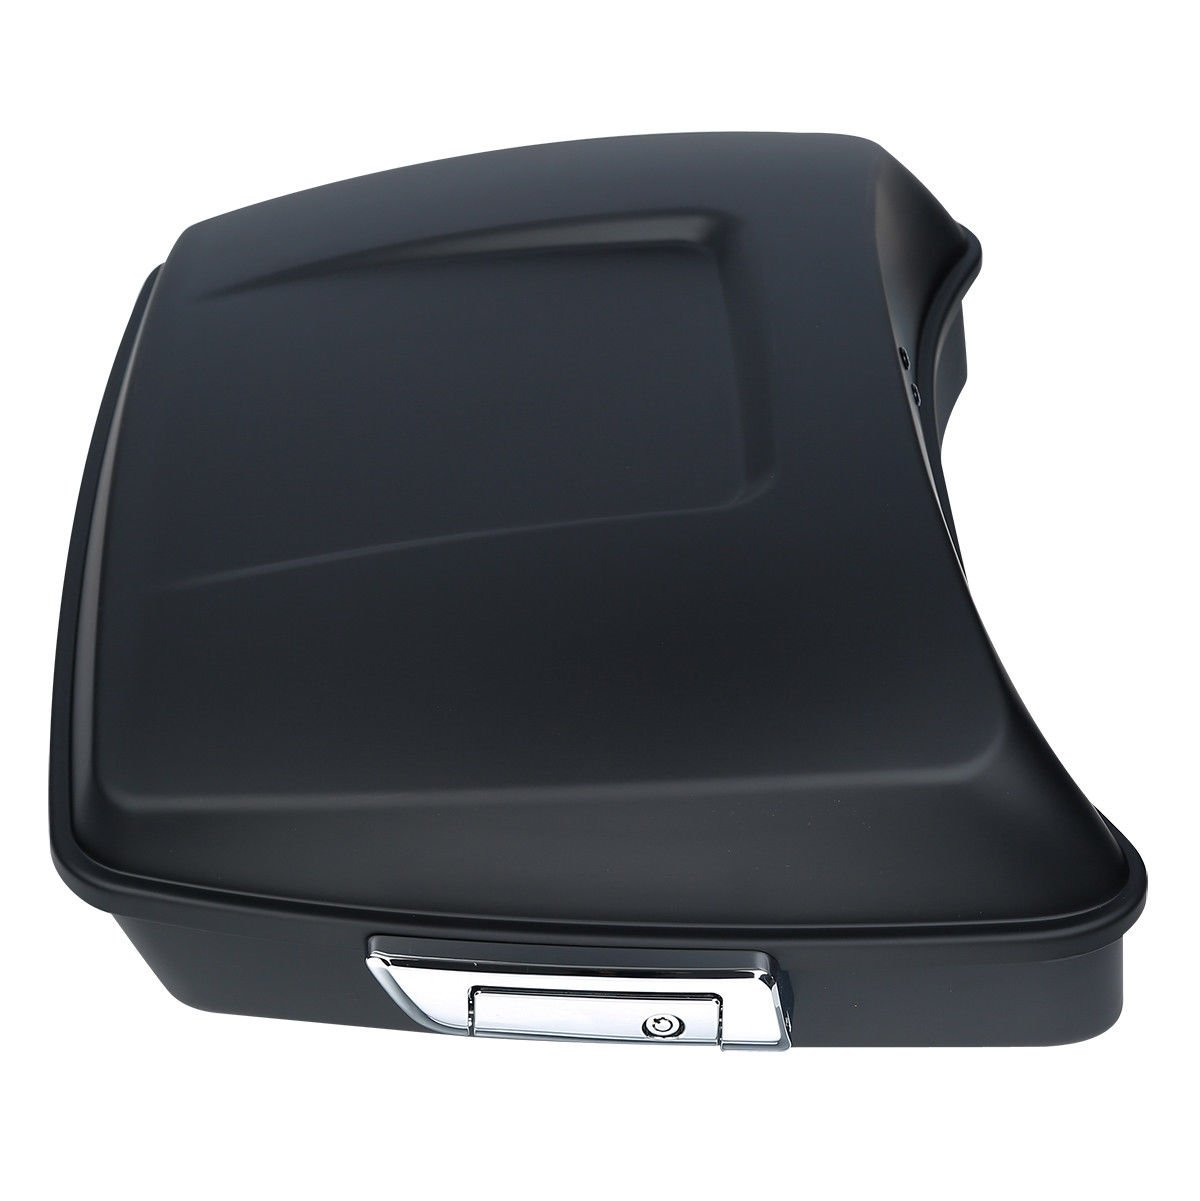 Backrest Pad Compatible with Harley Davidson Touring 2014-2018 XFMT Chopped Tour Pak Pack Trunk